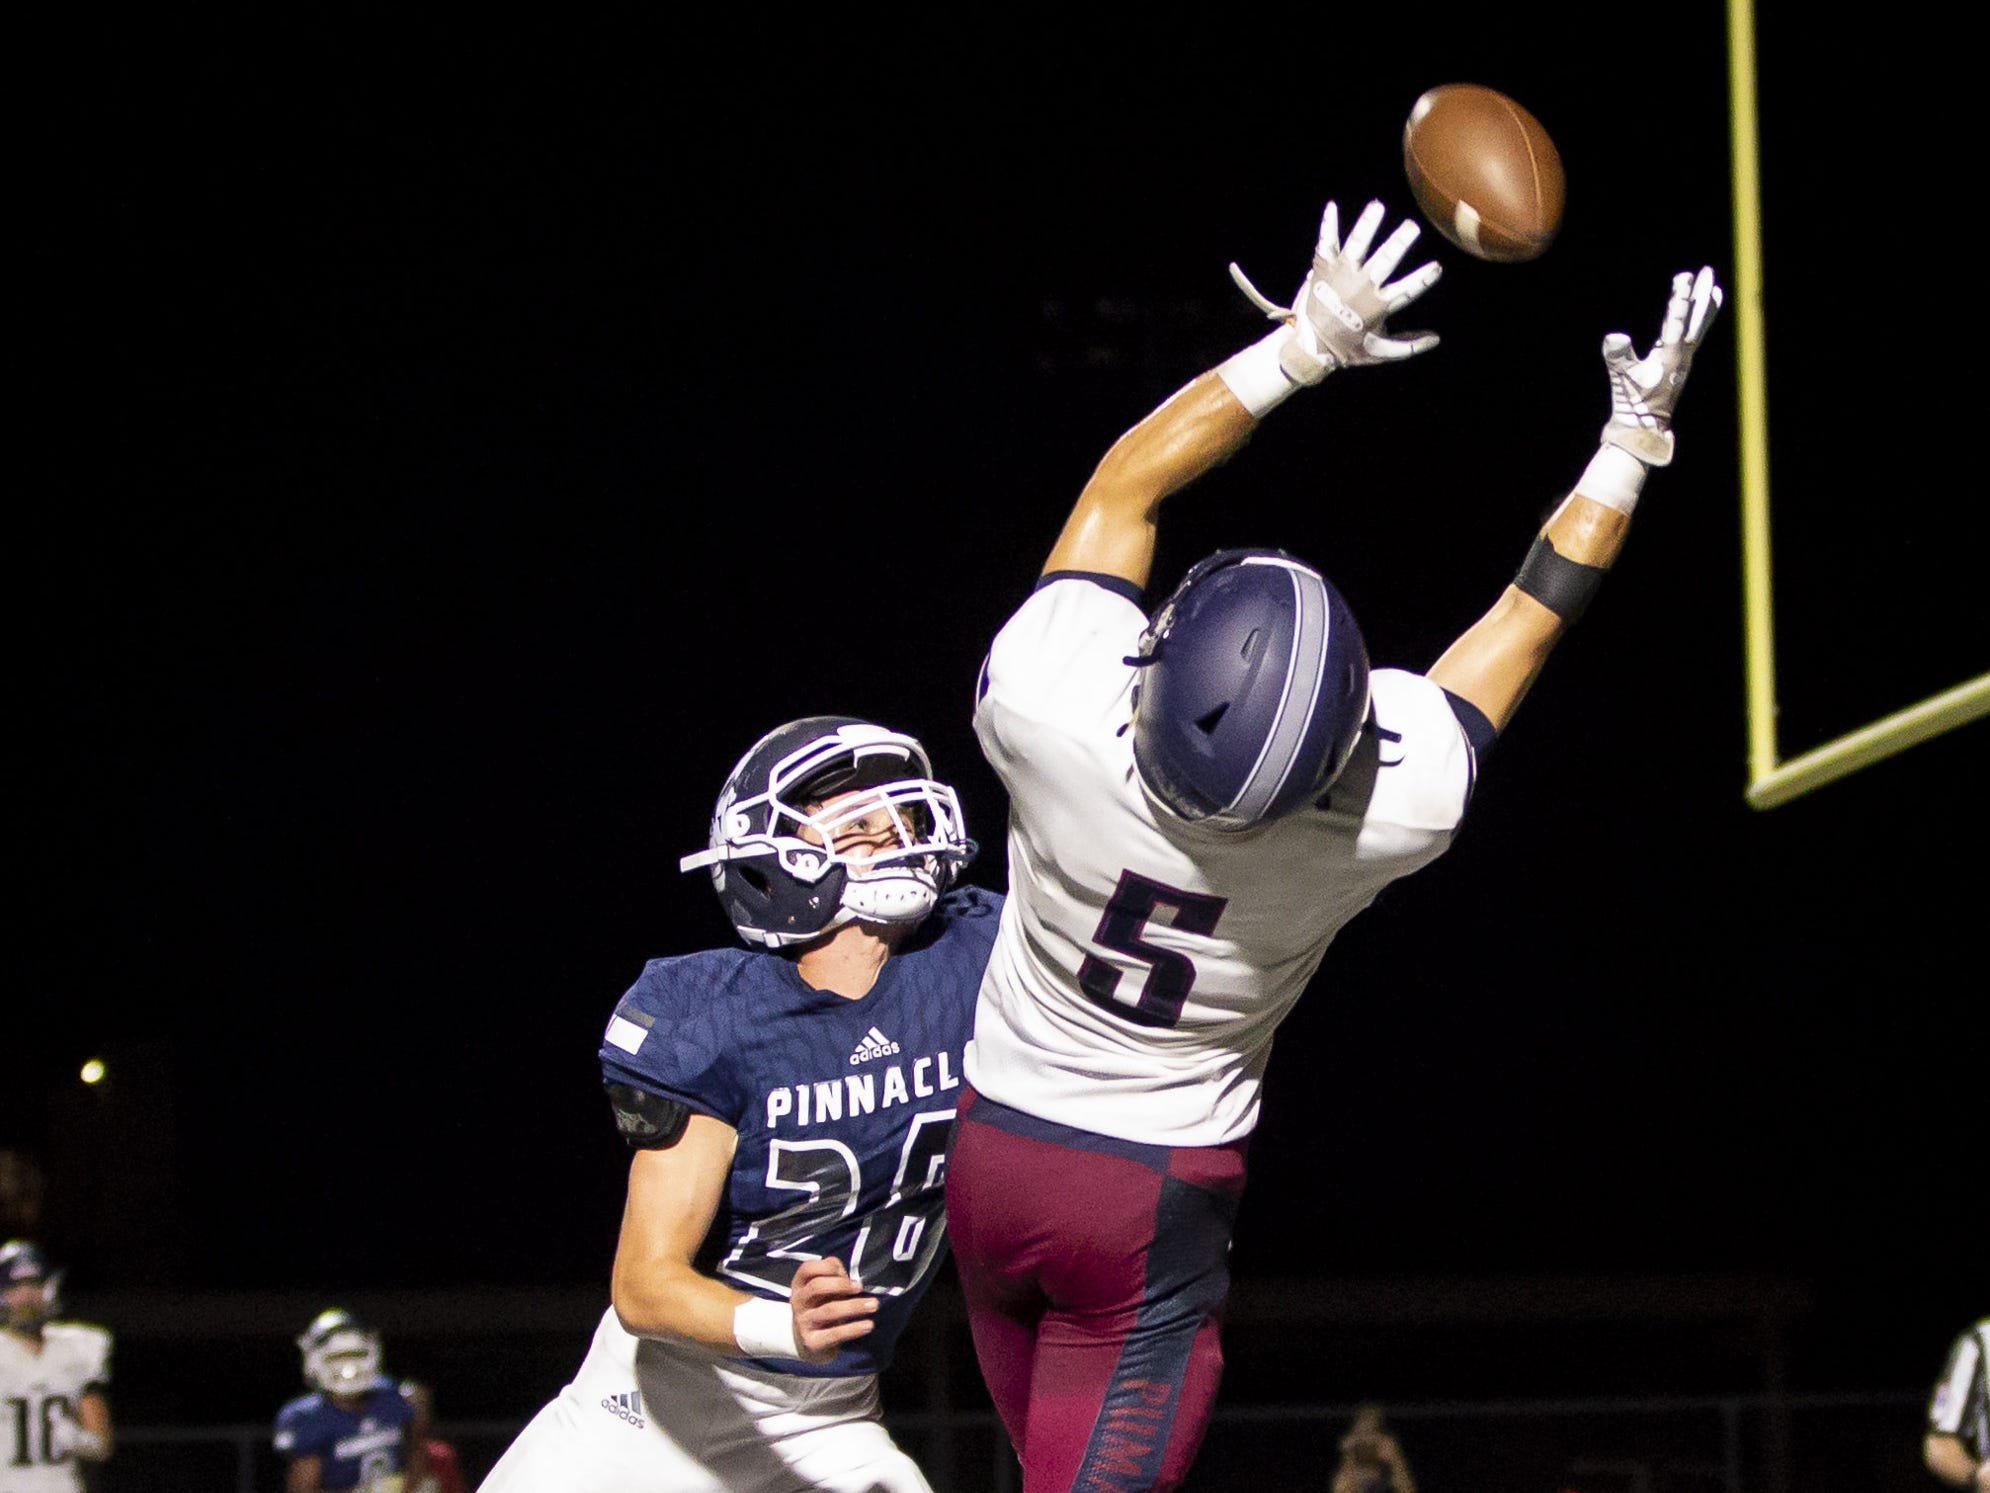 Wide receiver Colby Dickie (5) of the Perry Pumas is unable to haul in a pass against defender Jack Havener (28) of the Pinnacle Pioneers at Pinnacle High School on Friday, August 17, 2018 in Phoenix, Arizona.